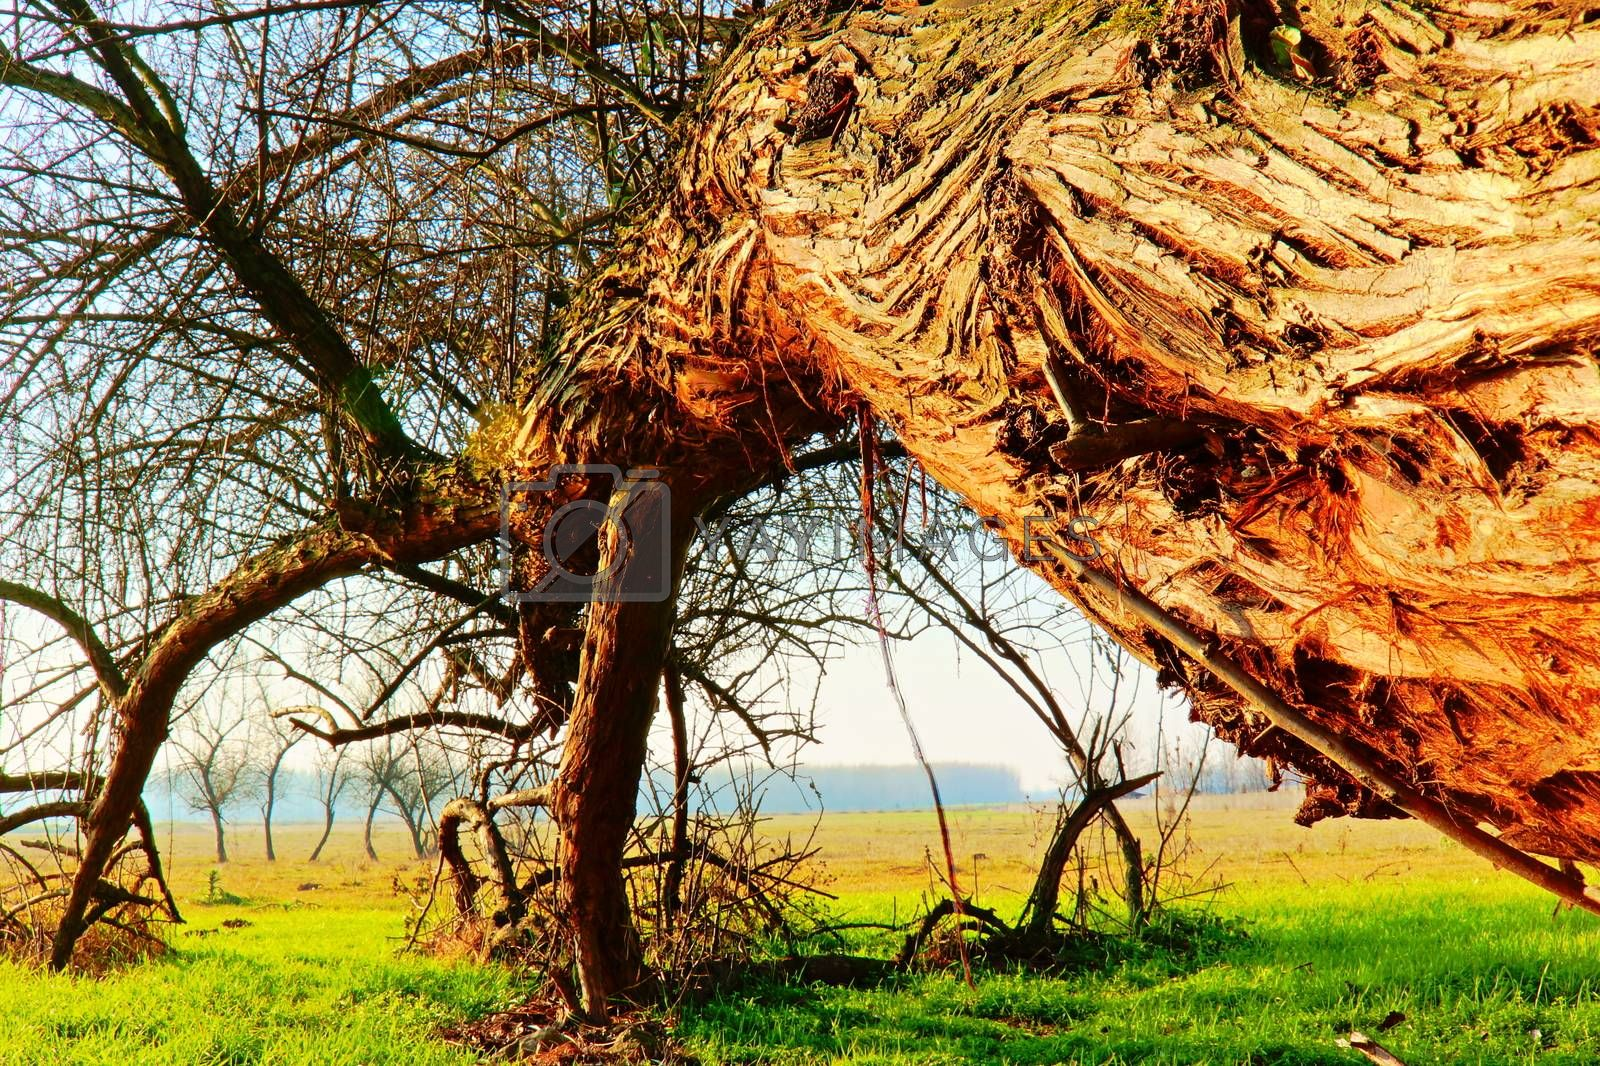 The Leaning Tree  in the Puszta